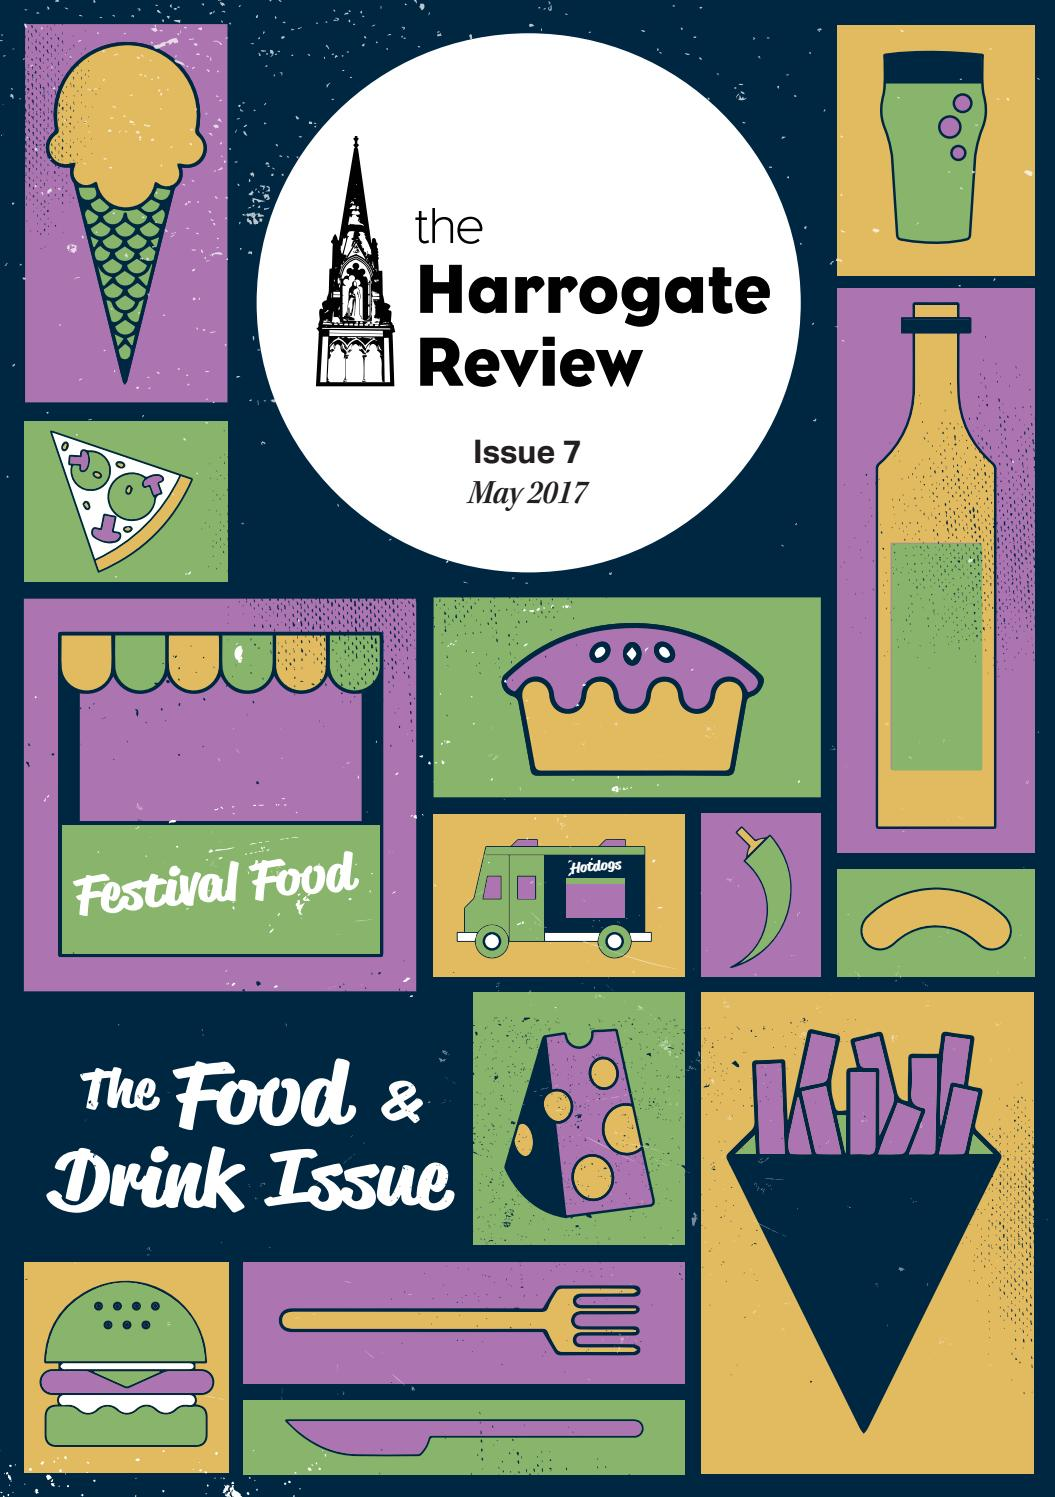 The harrogate review issue seven may 2017 by festival the harrogate review issue seven may 2017 by festival publications issuu geenschuldenfo Images